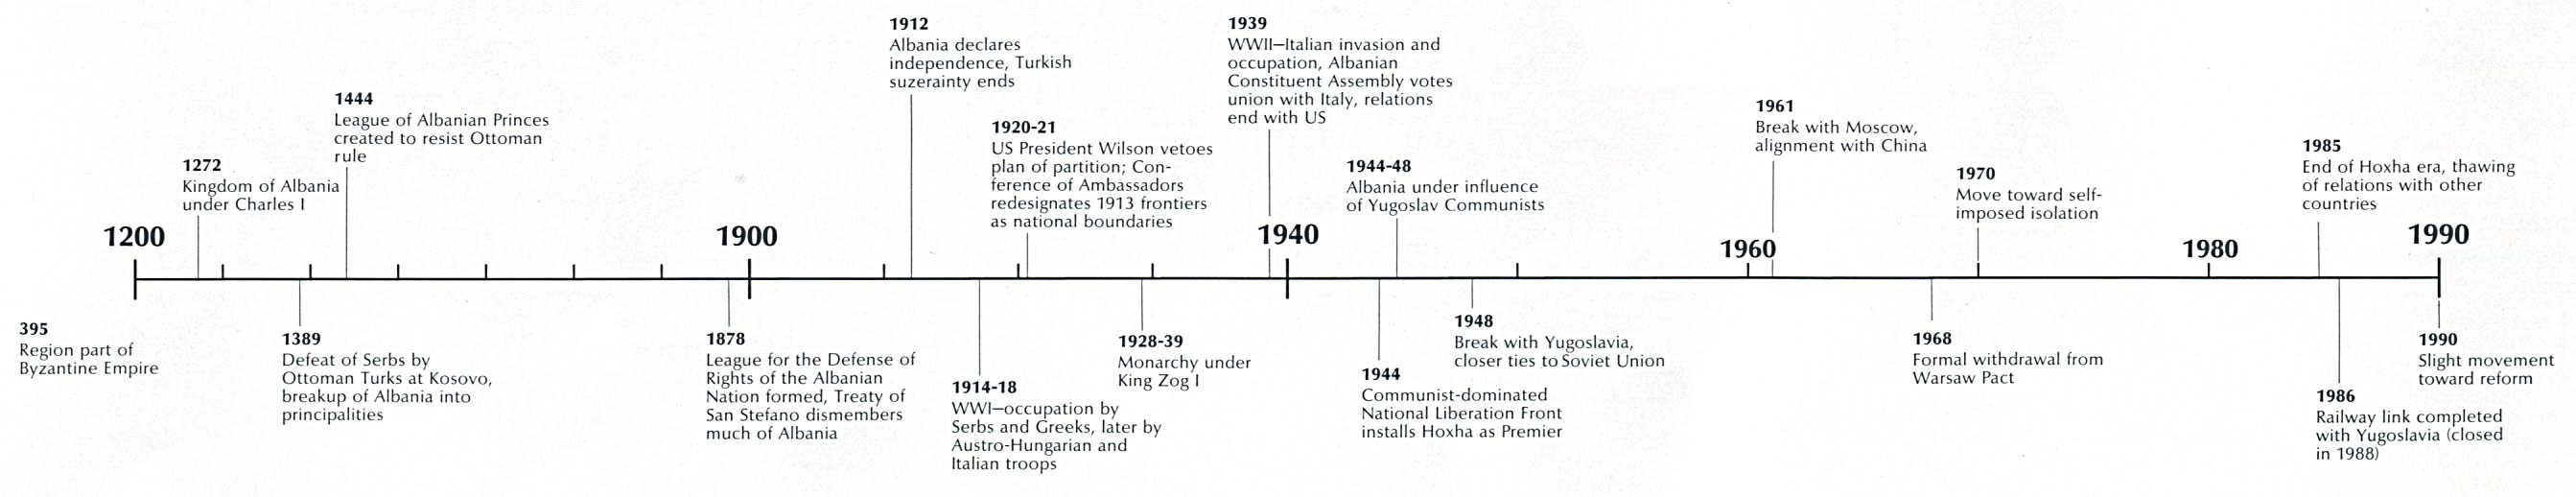 an overview of the causes for rebellion in hungary and czechoslovakia in 20th century The twentieth century history of this history is quite complex and thus this material  is of an introductory nature only  1536 - bratislava becomes the capital of  hungary until 1784  the overwhelming reason for departure was abject poverty   29) and crush the slovak national uprising and dissolve the nation of  slovakia.